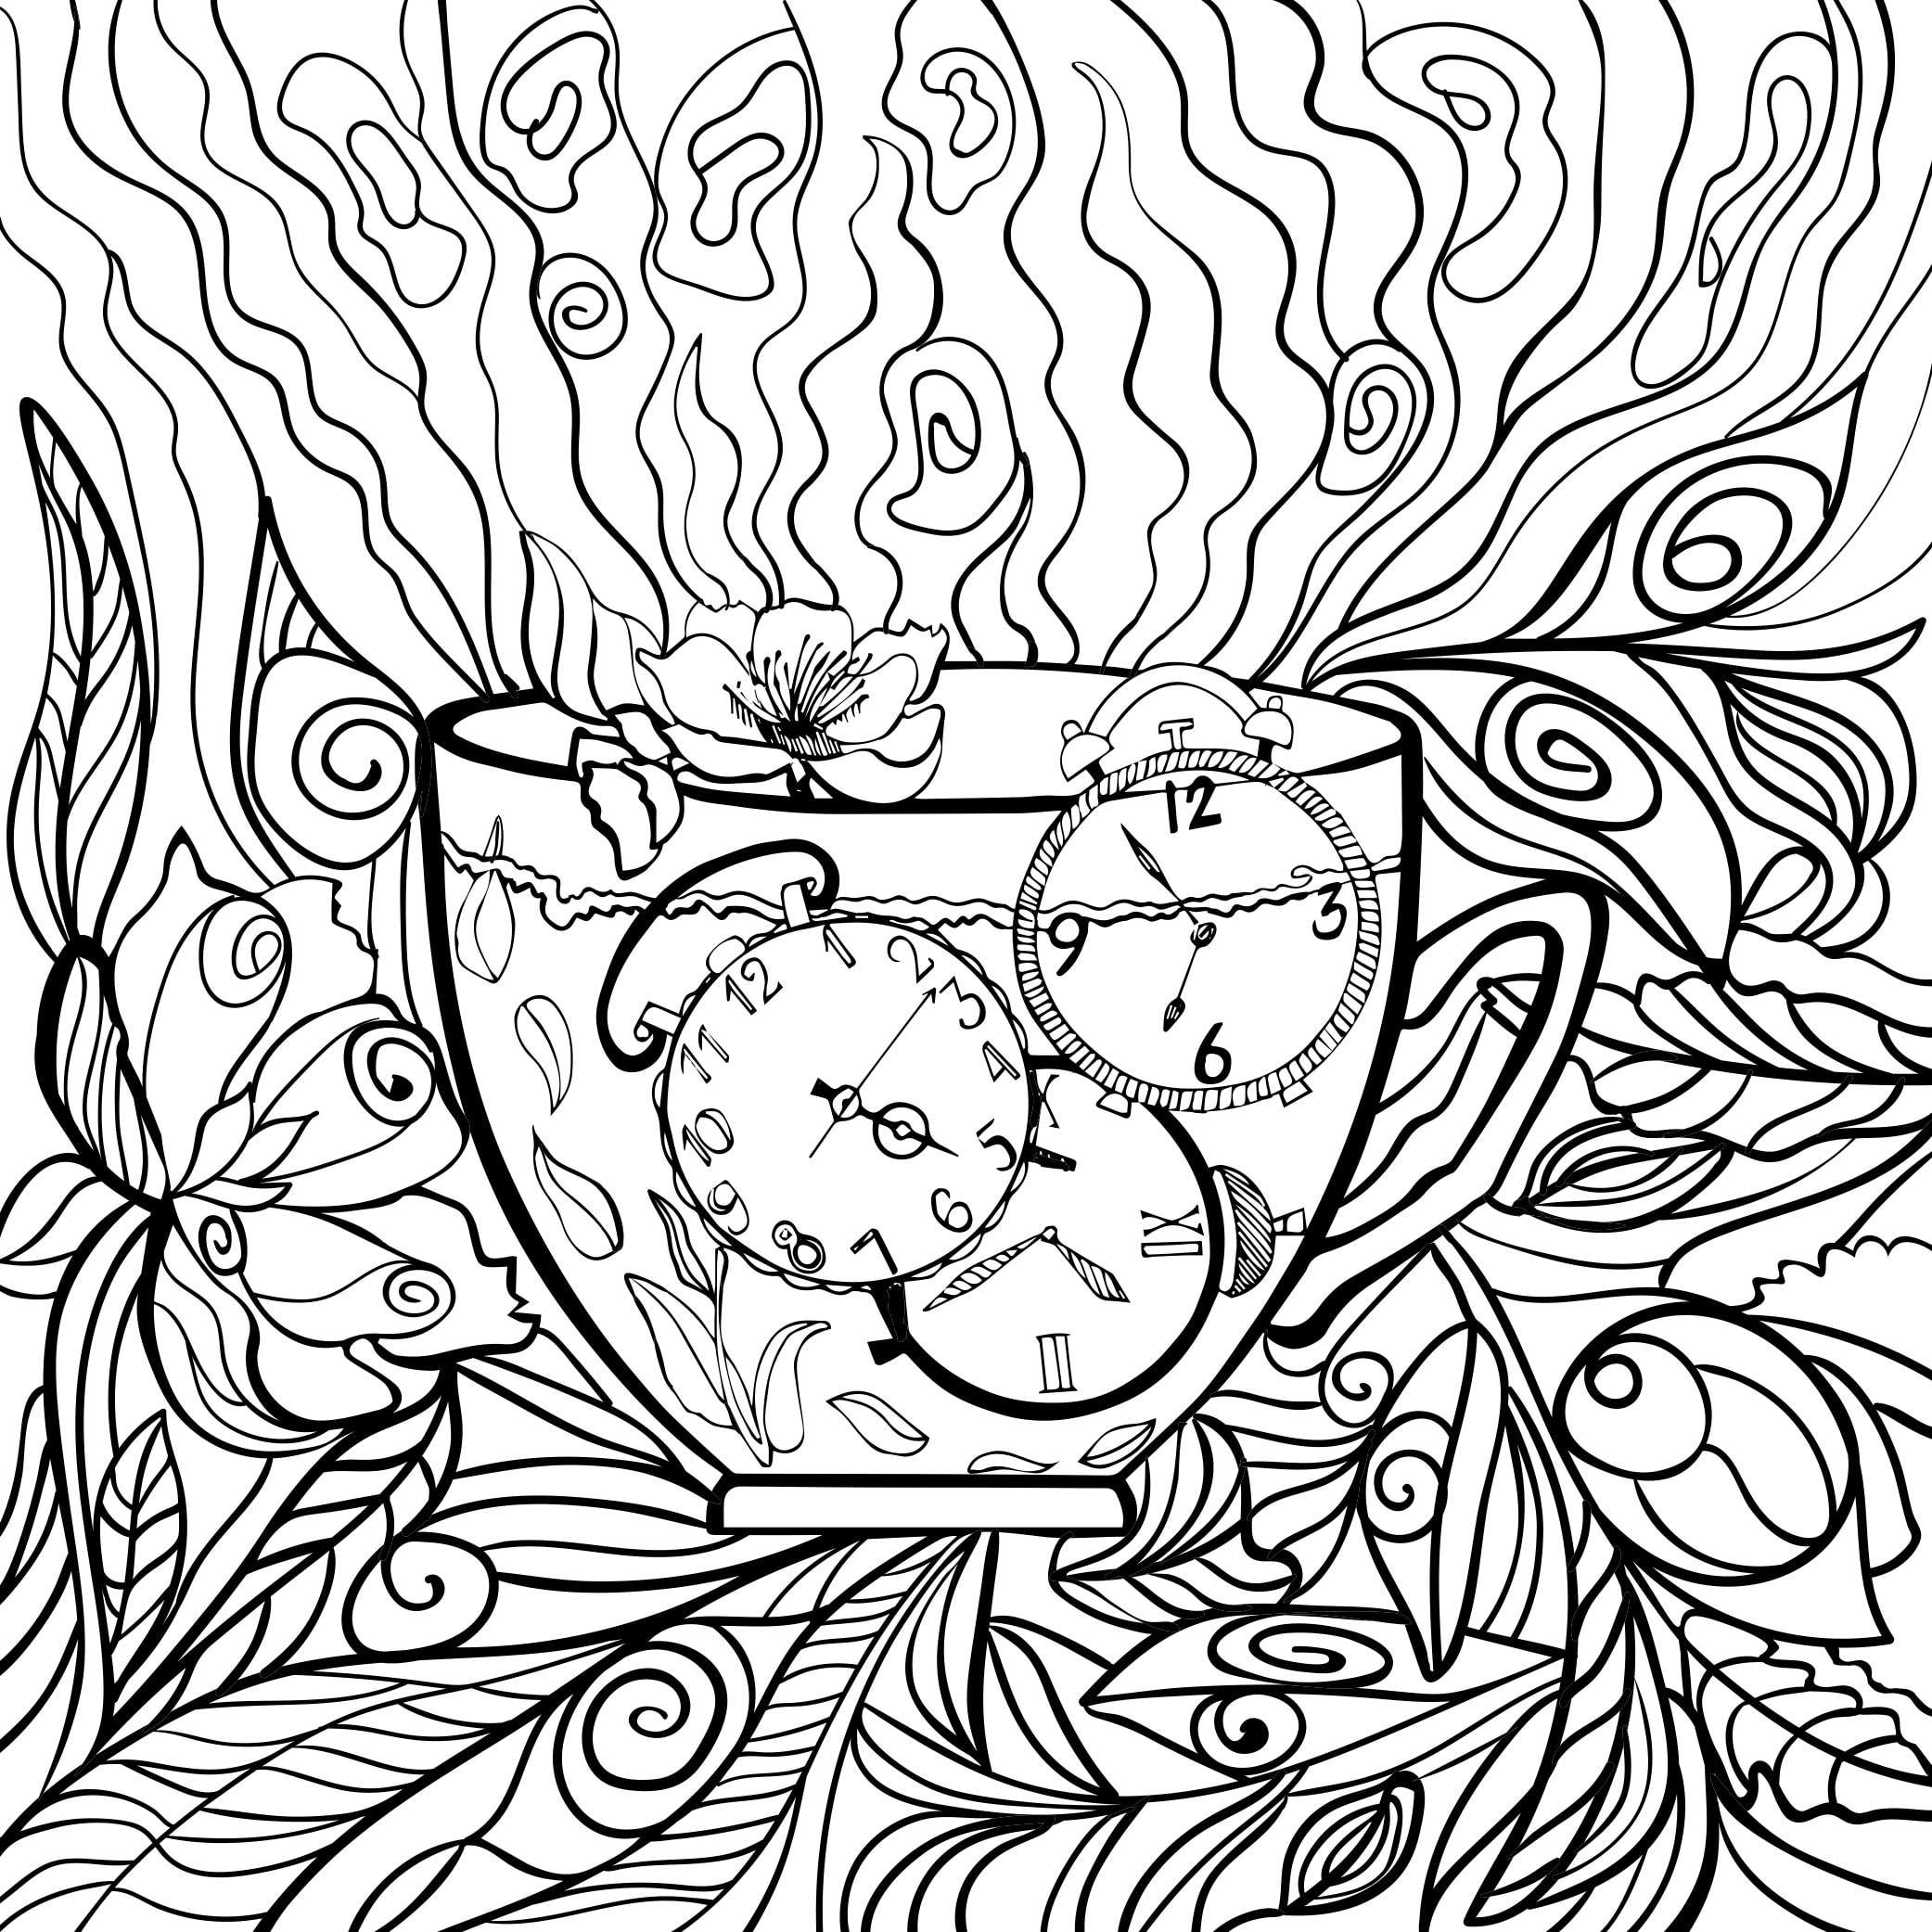 Coloring Page - time in a teacup